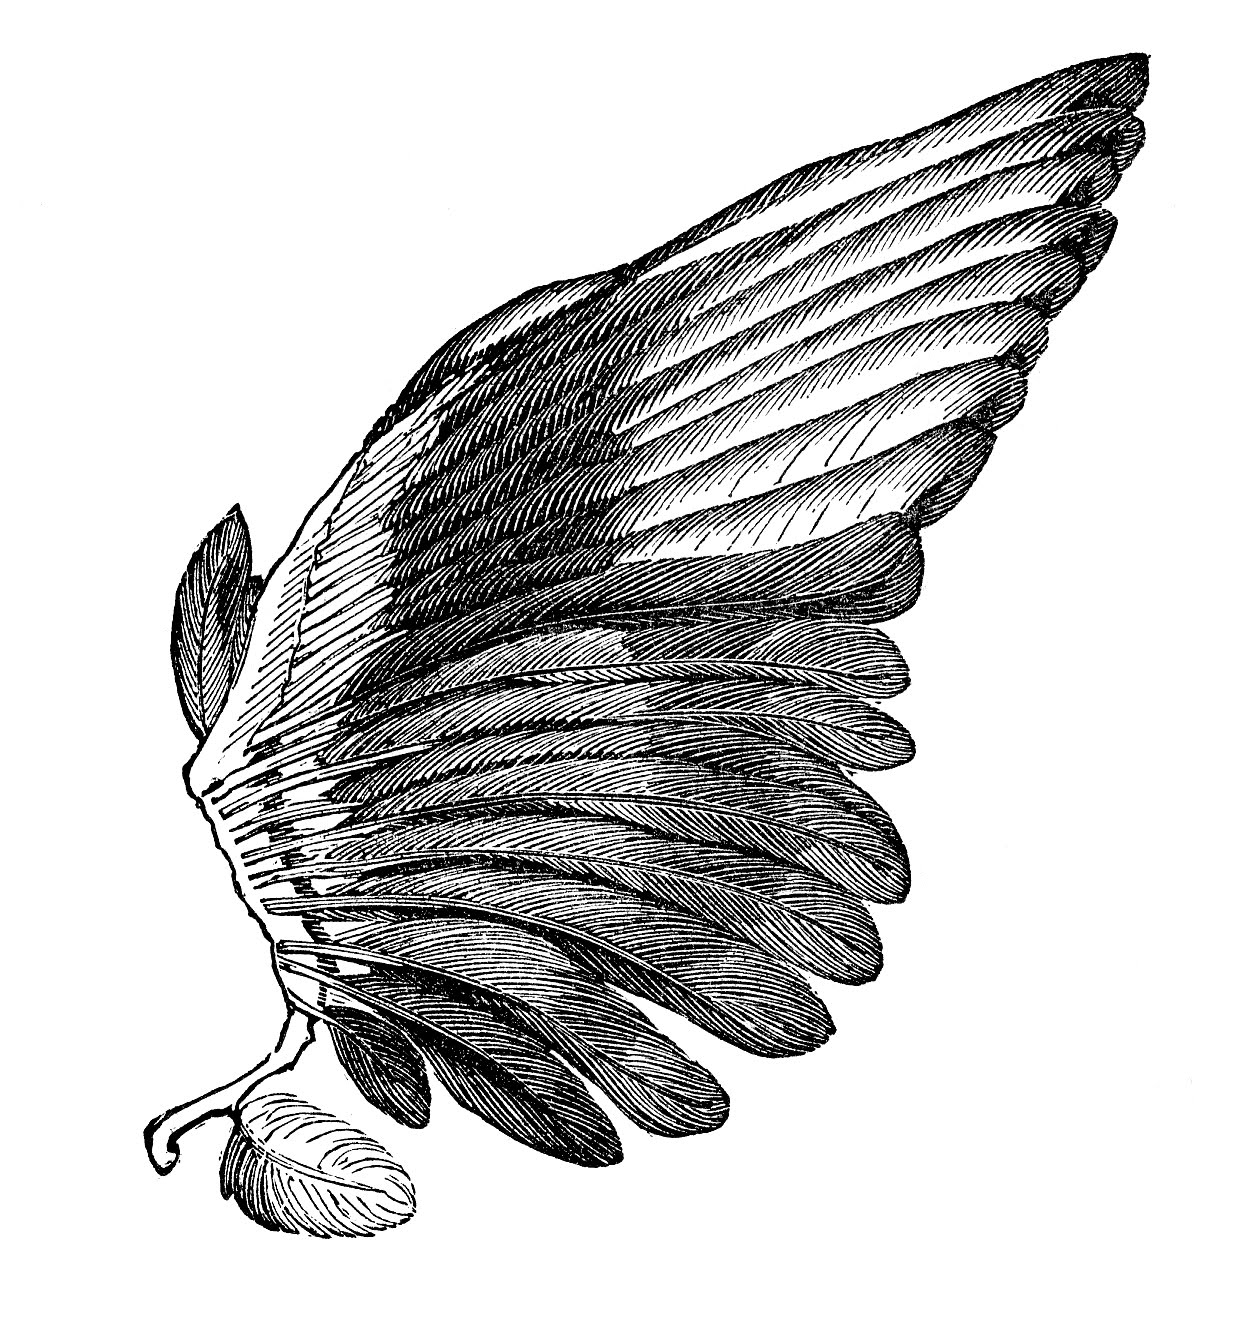 Vintage Clip Art Image - Feather Wings - For Angels - The ...